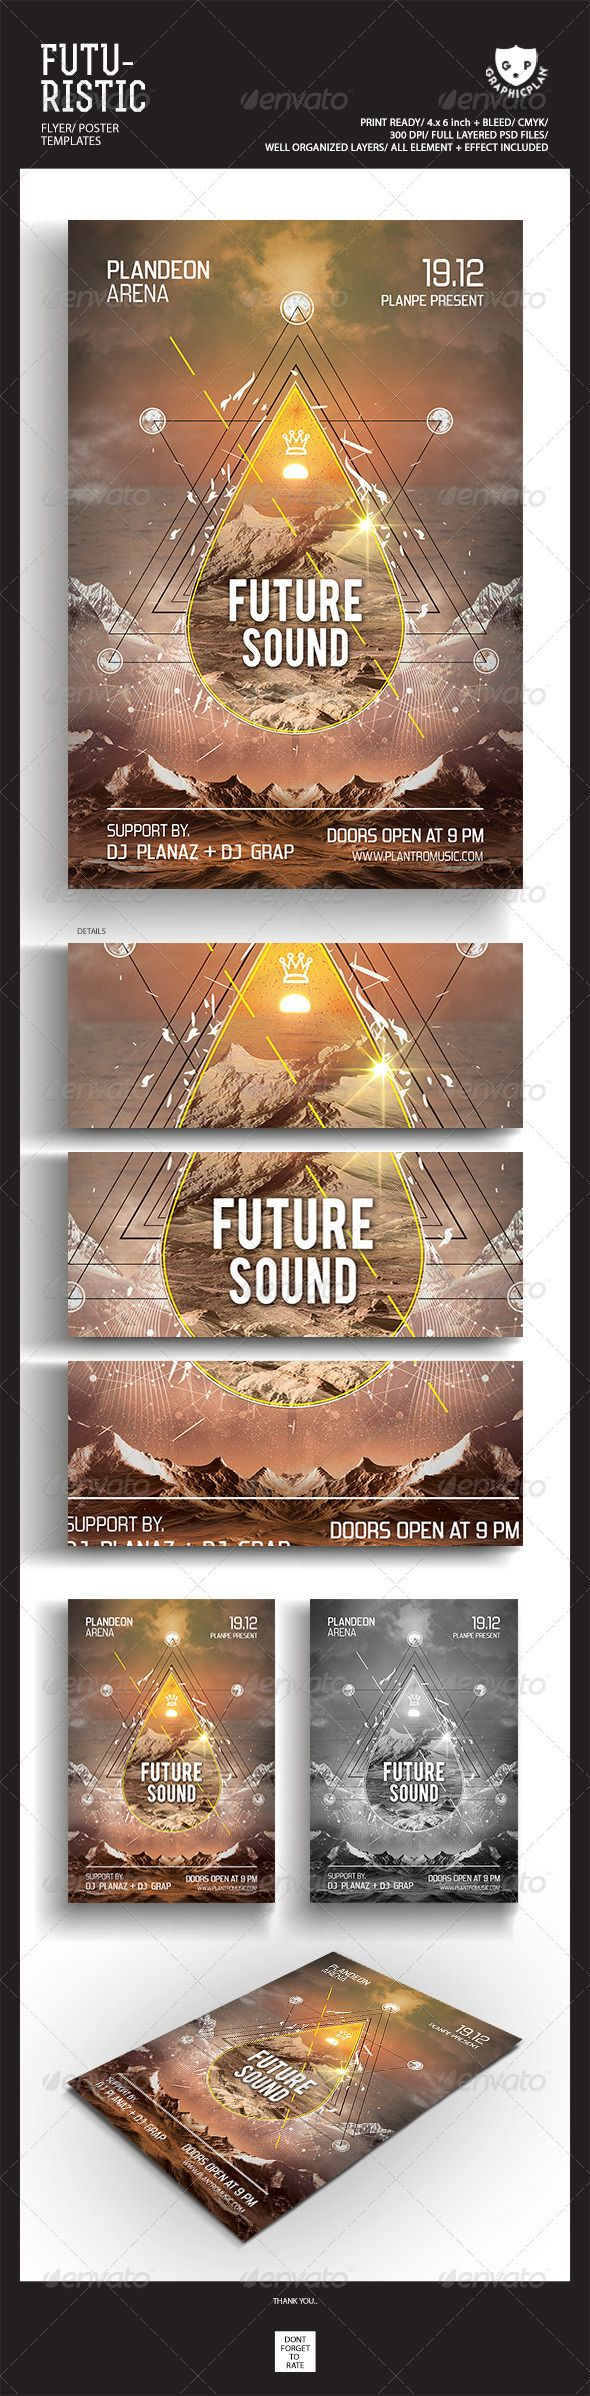 """Futuristic Flyer Poster Templates #GraphicRiver Featured Flyers Flyer Artwork """"Future Sound"""" This flyer was designed to promote an Electro / Dubstep / Dance / Drum and Bass / Techno / House music event, such as a gig, concert, festival, dj set, party or weekly event in a music club and other kind of special evenings. This flyer can also be used for a new album promotion or"""